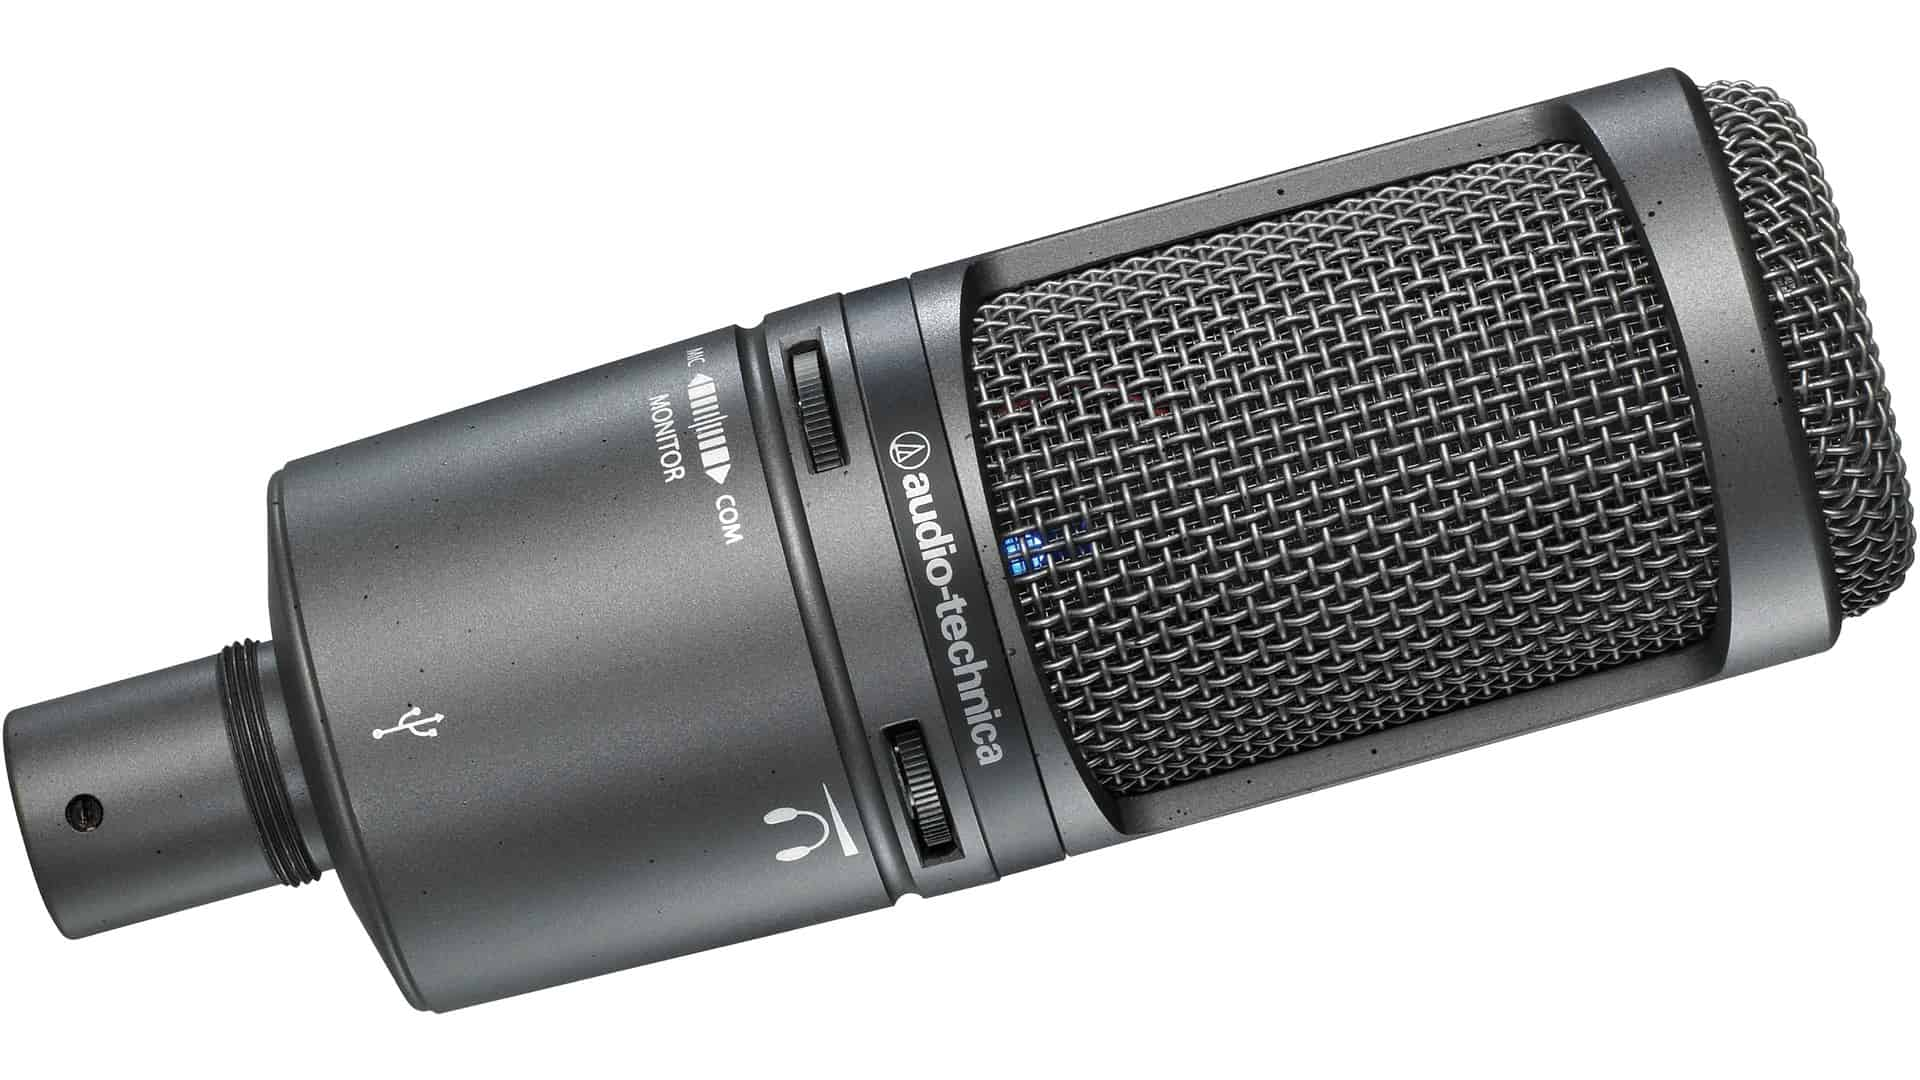 USB Microphone AT-2020 Plus Mic Audio-Technica AT2020USB